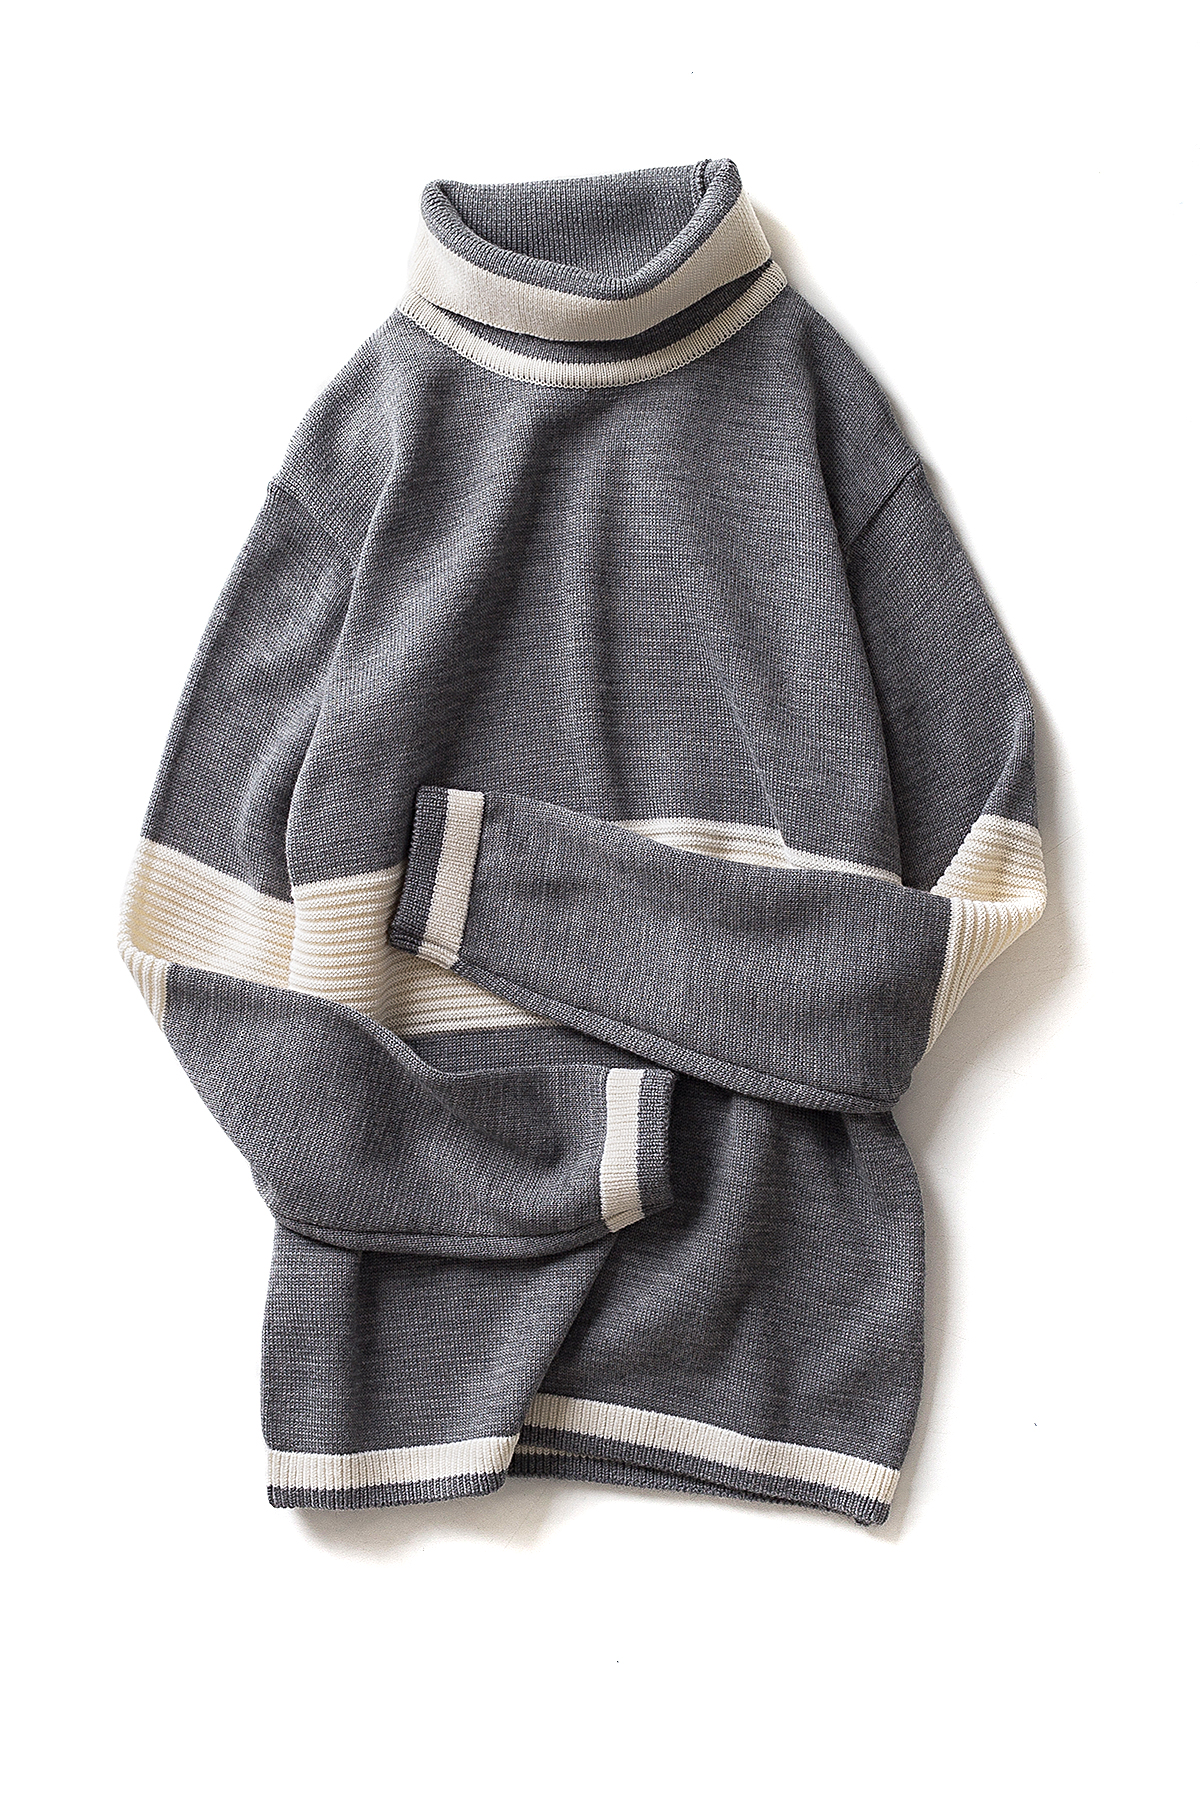 Ooparts : Roll Neck Striped Wool Sweater (Grey)